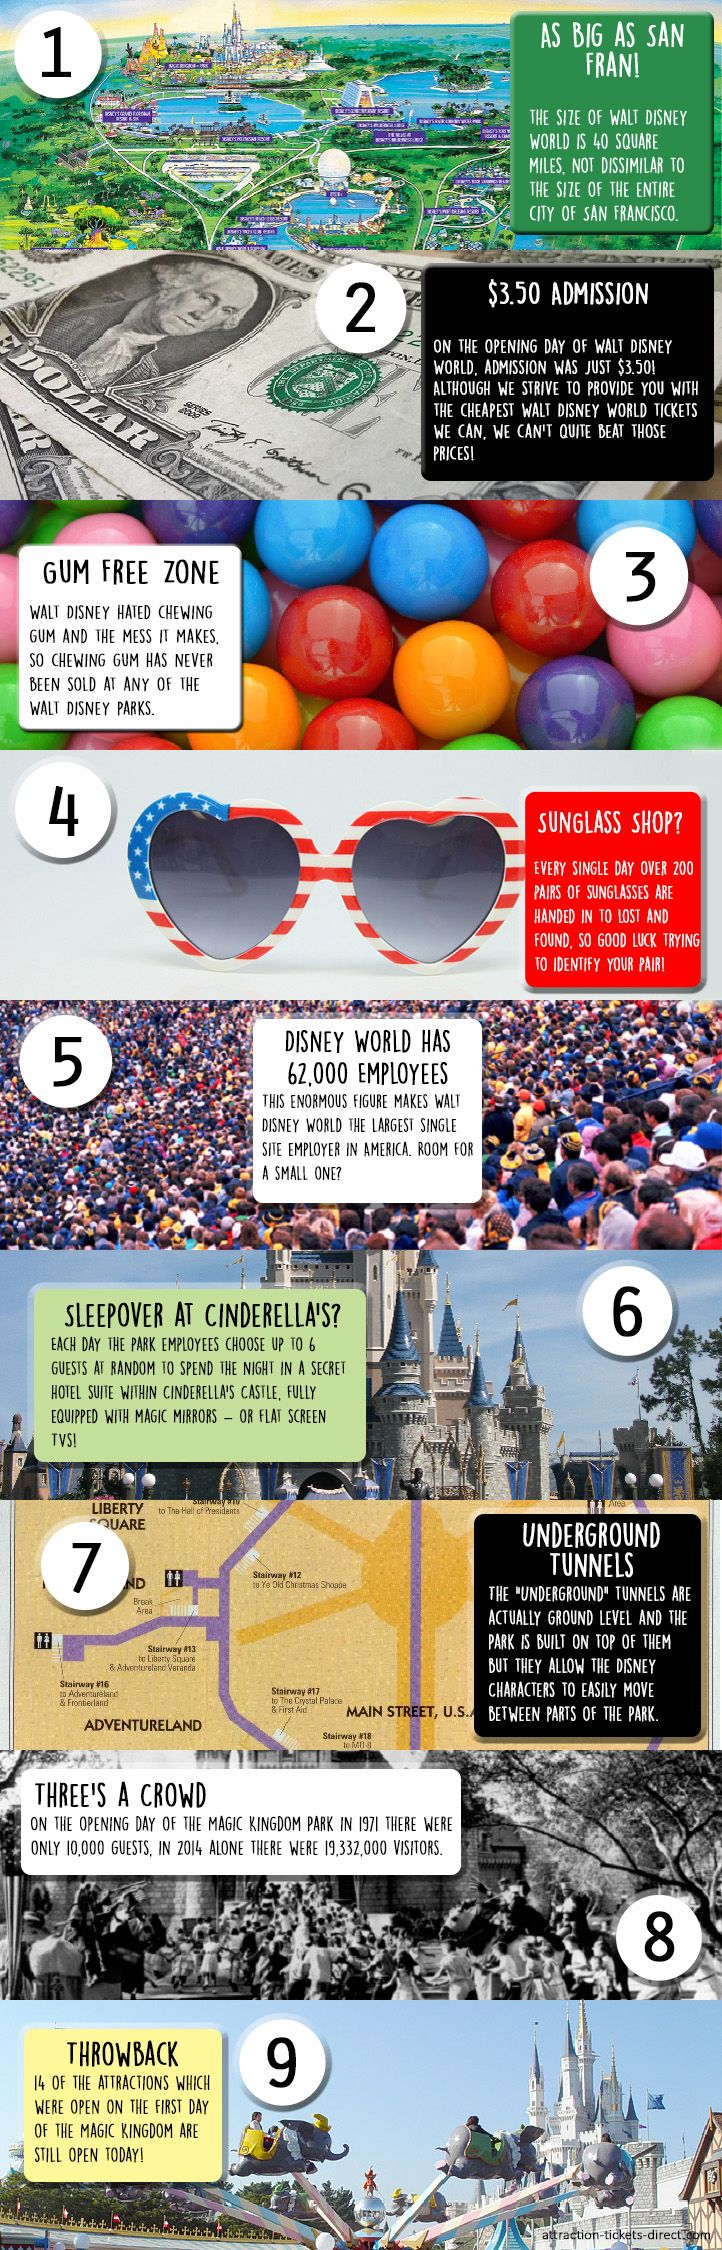 9 Incredible Walt Disney Facts